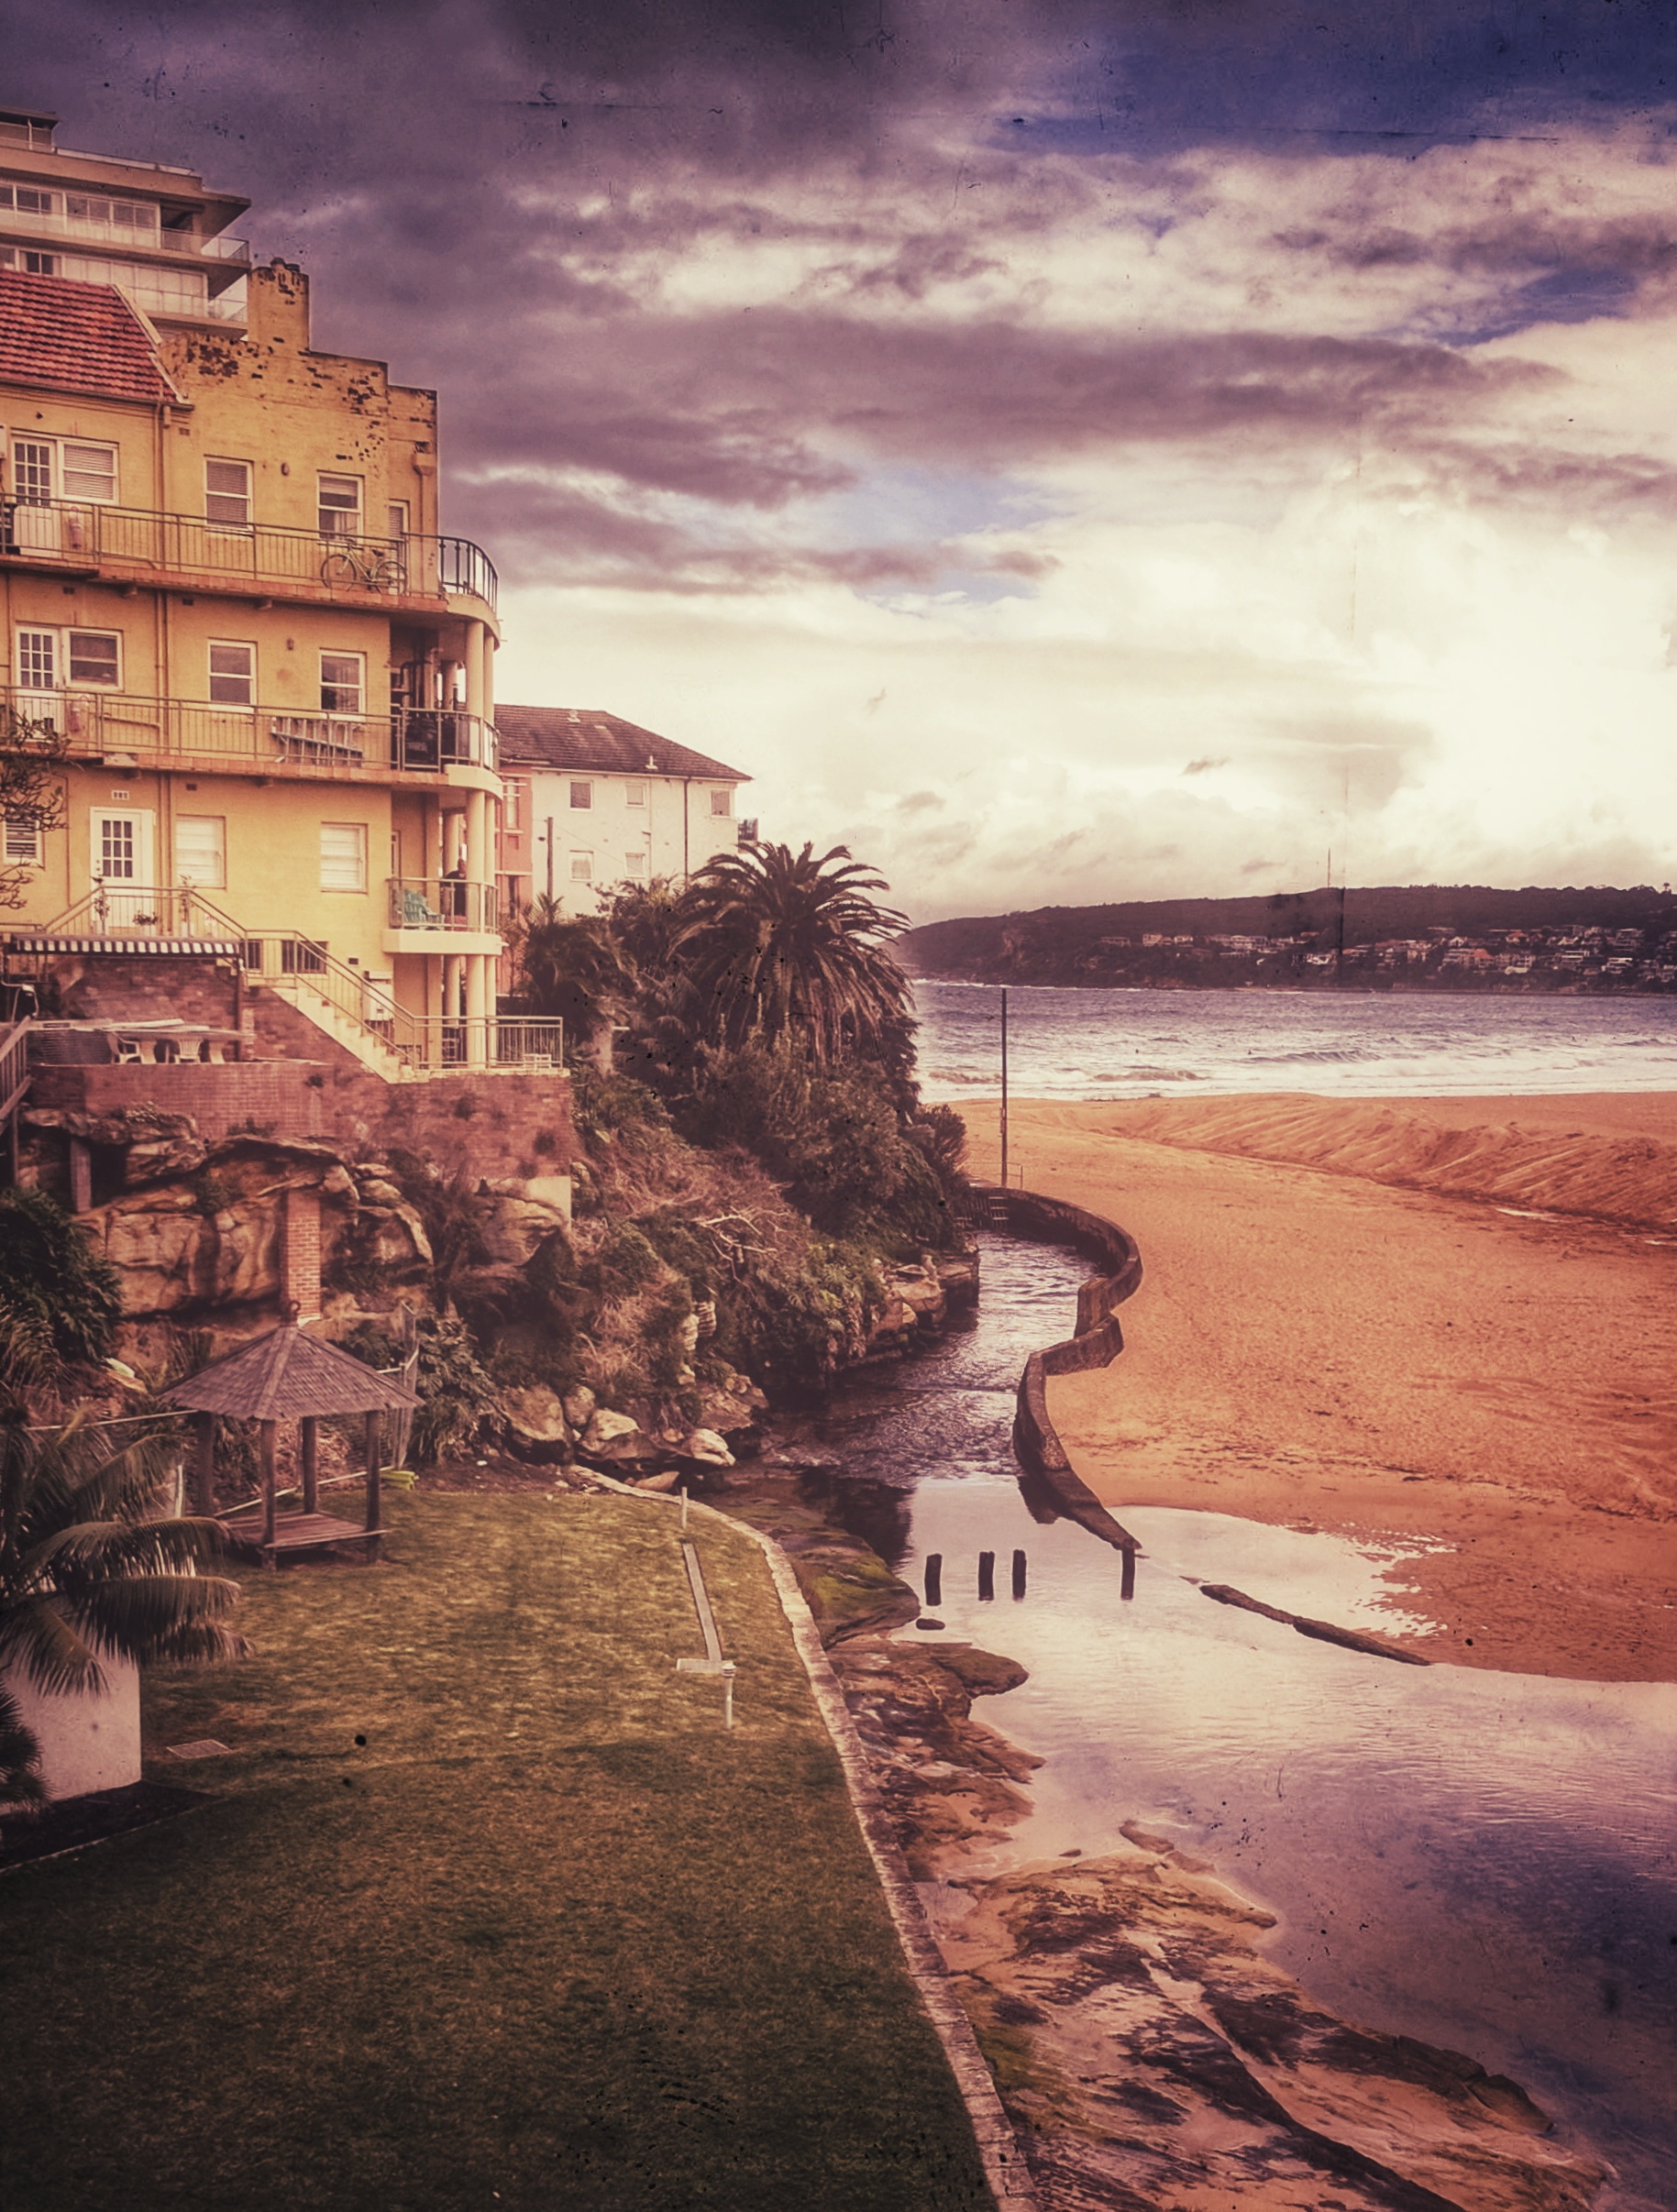 Heavily edited view of Queenscliff apartments and Manly Beach, Australia